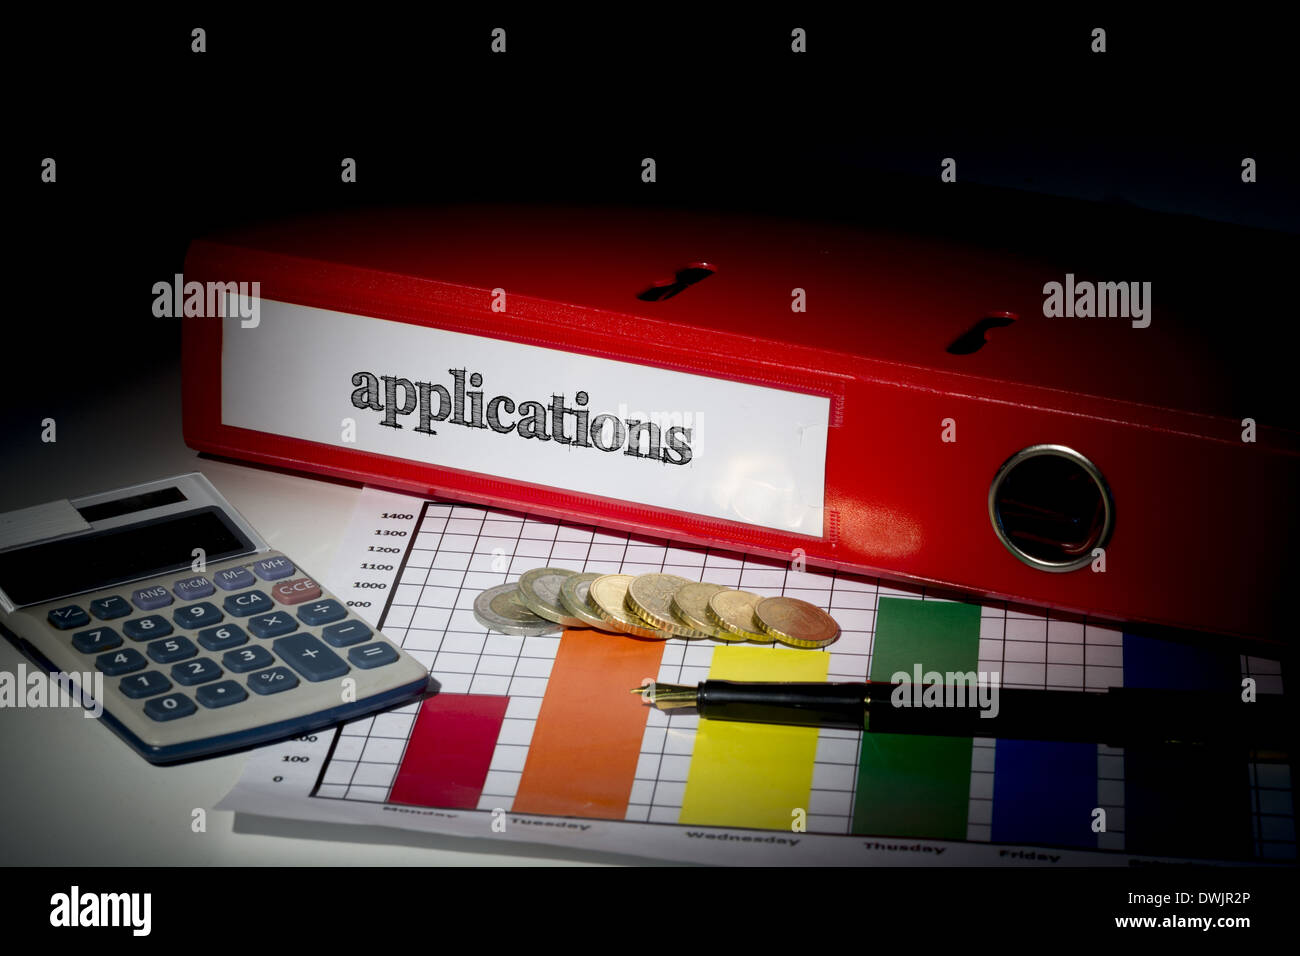 Applications de l'entreprise binder rouge Photo Stock